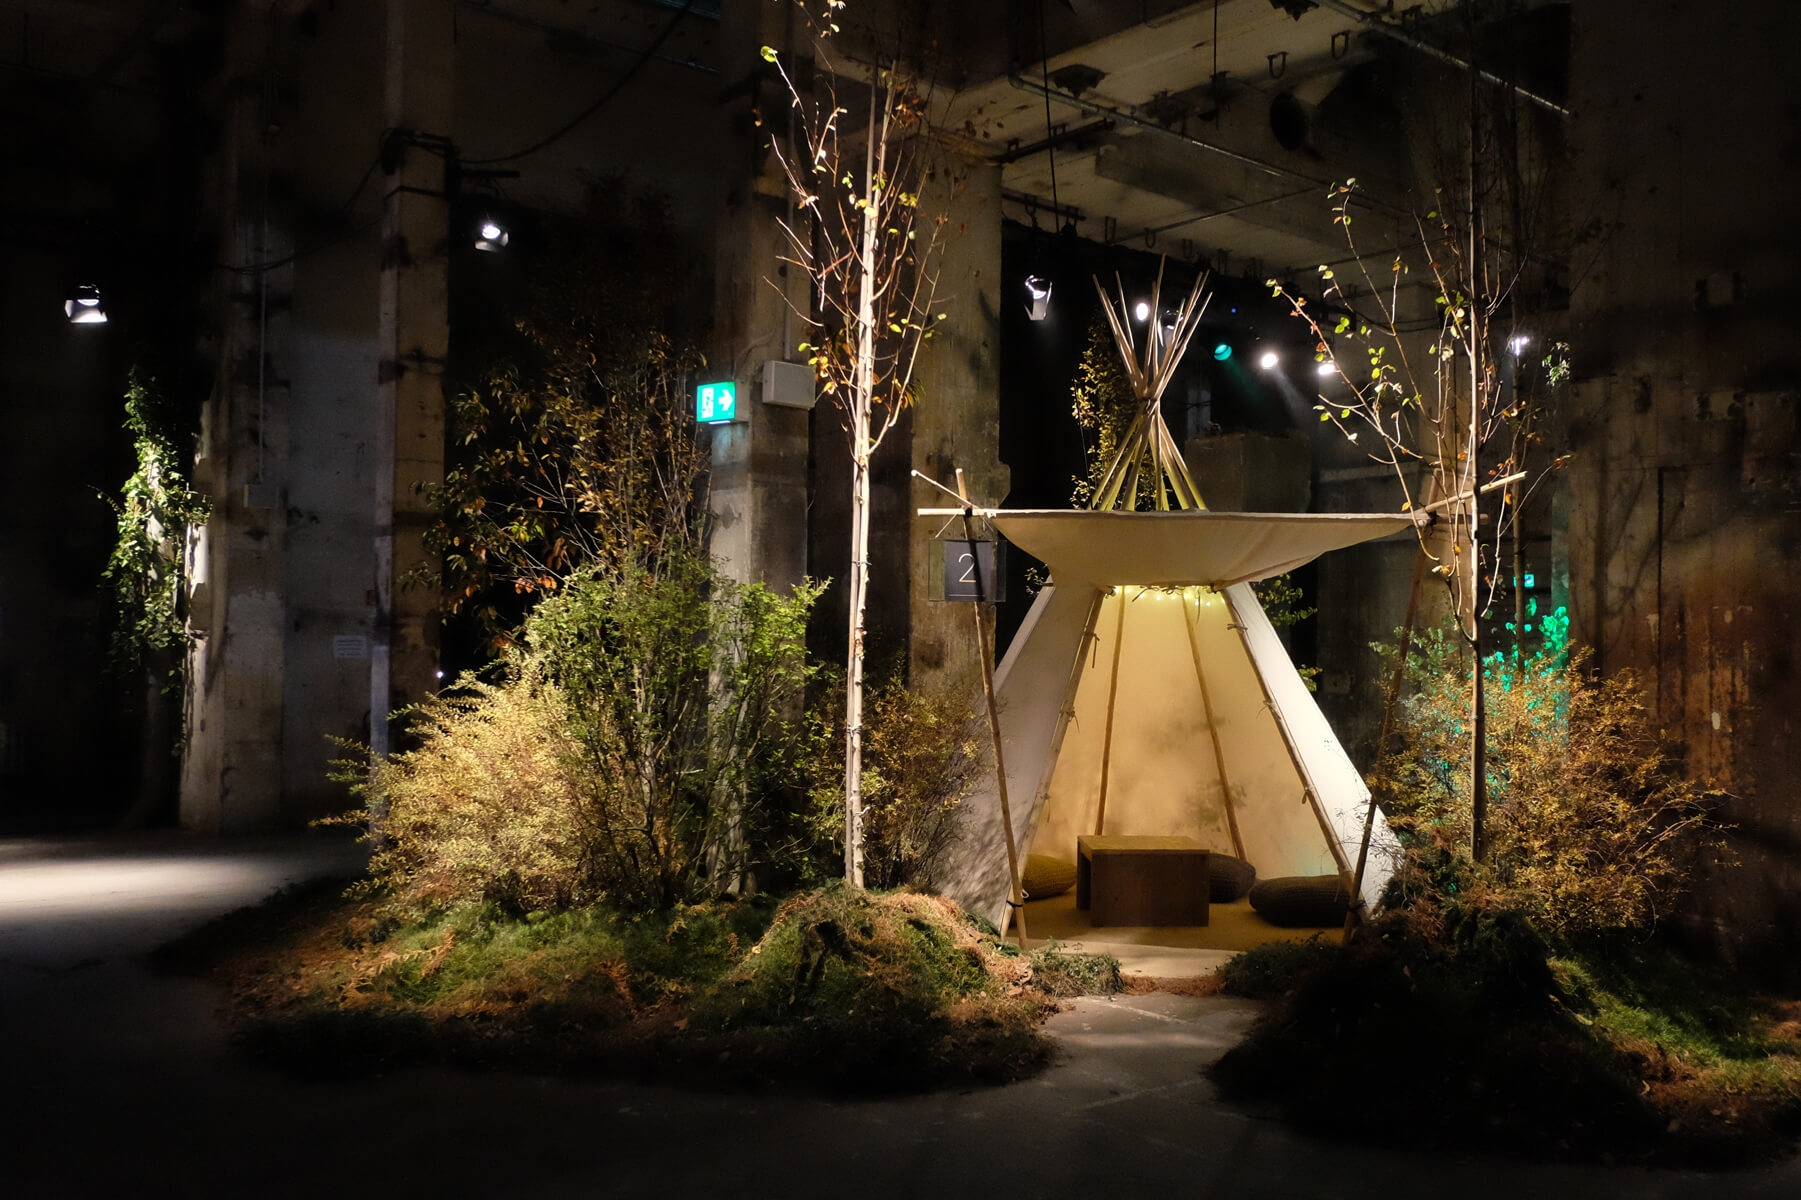 Google, Playtime, Kraftwerk, Berlin, Set Design Berlin, Tee Pee, Industrial Nature